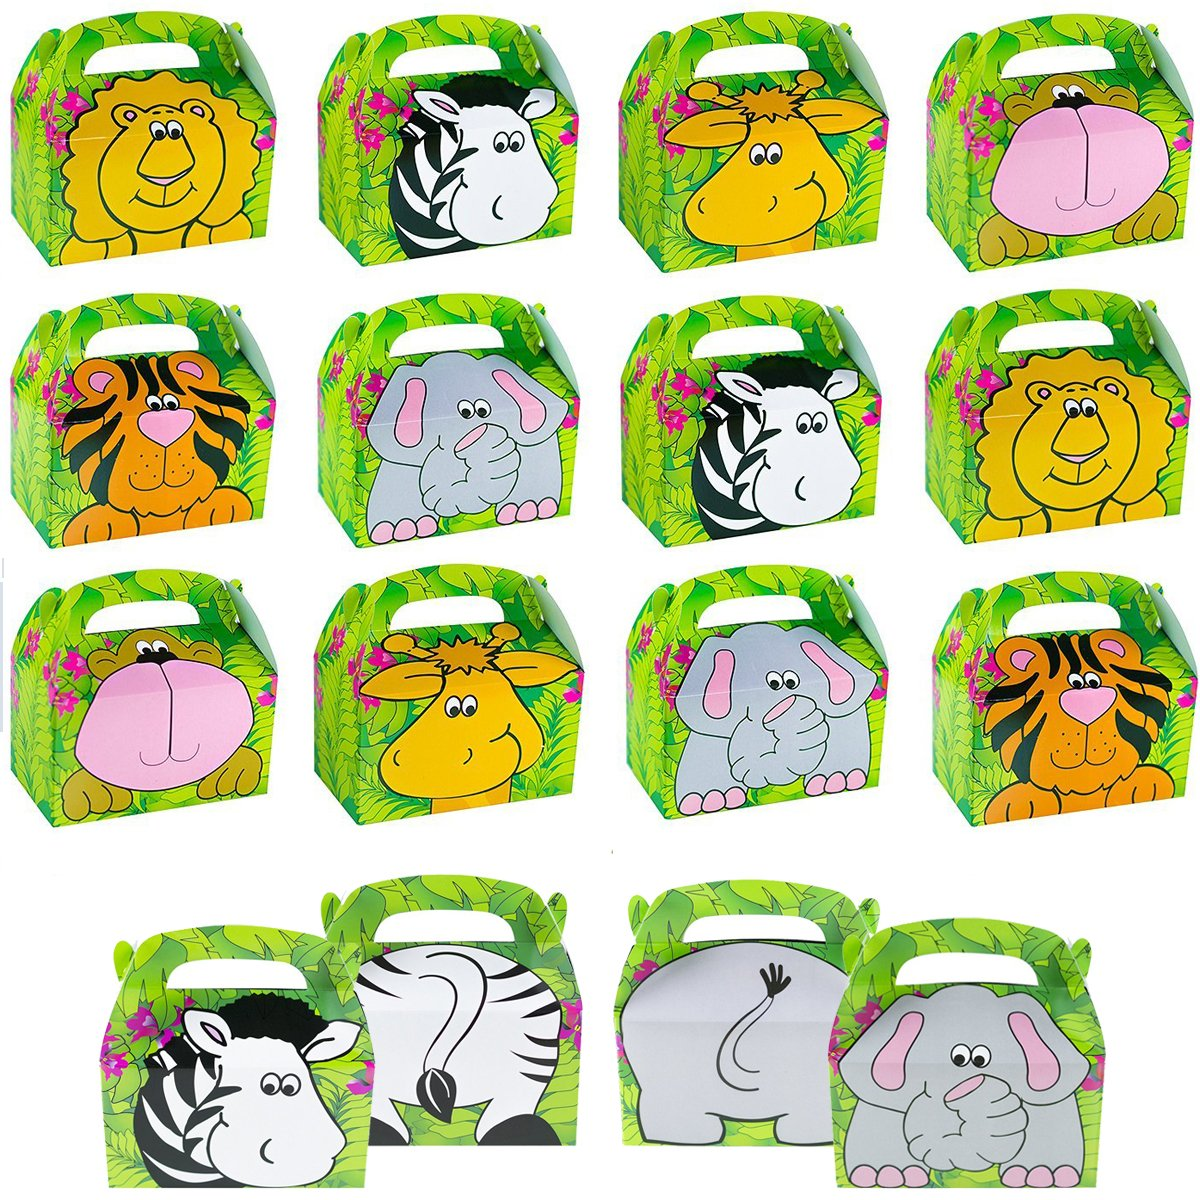 Safari Zoo Animal Party Favors 120 Piece Set Includes Treat Boxes and Enough Party Favors Birthday Bundle for 12 Kids Jungle Animal Party Supplies Pack by RBBZ party (Image #2)